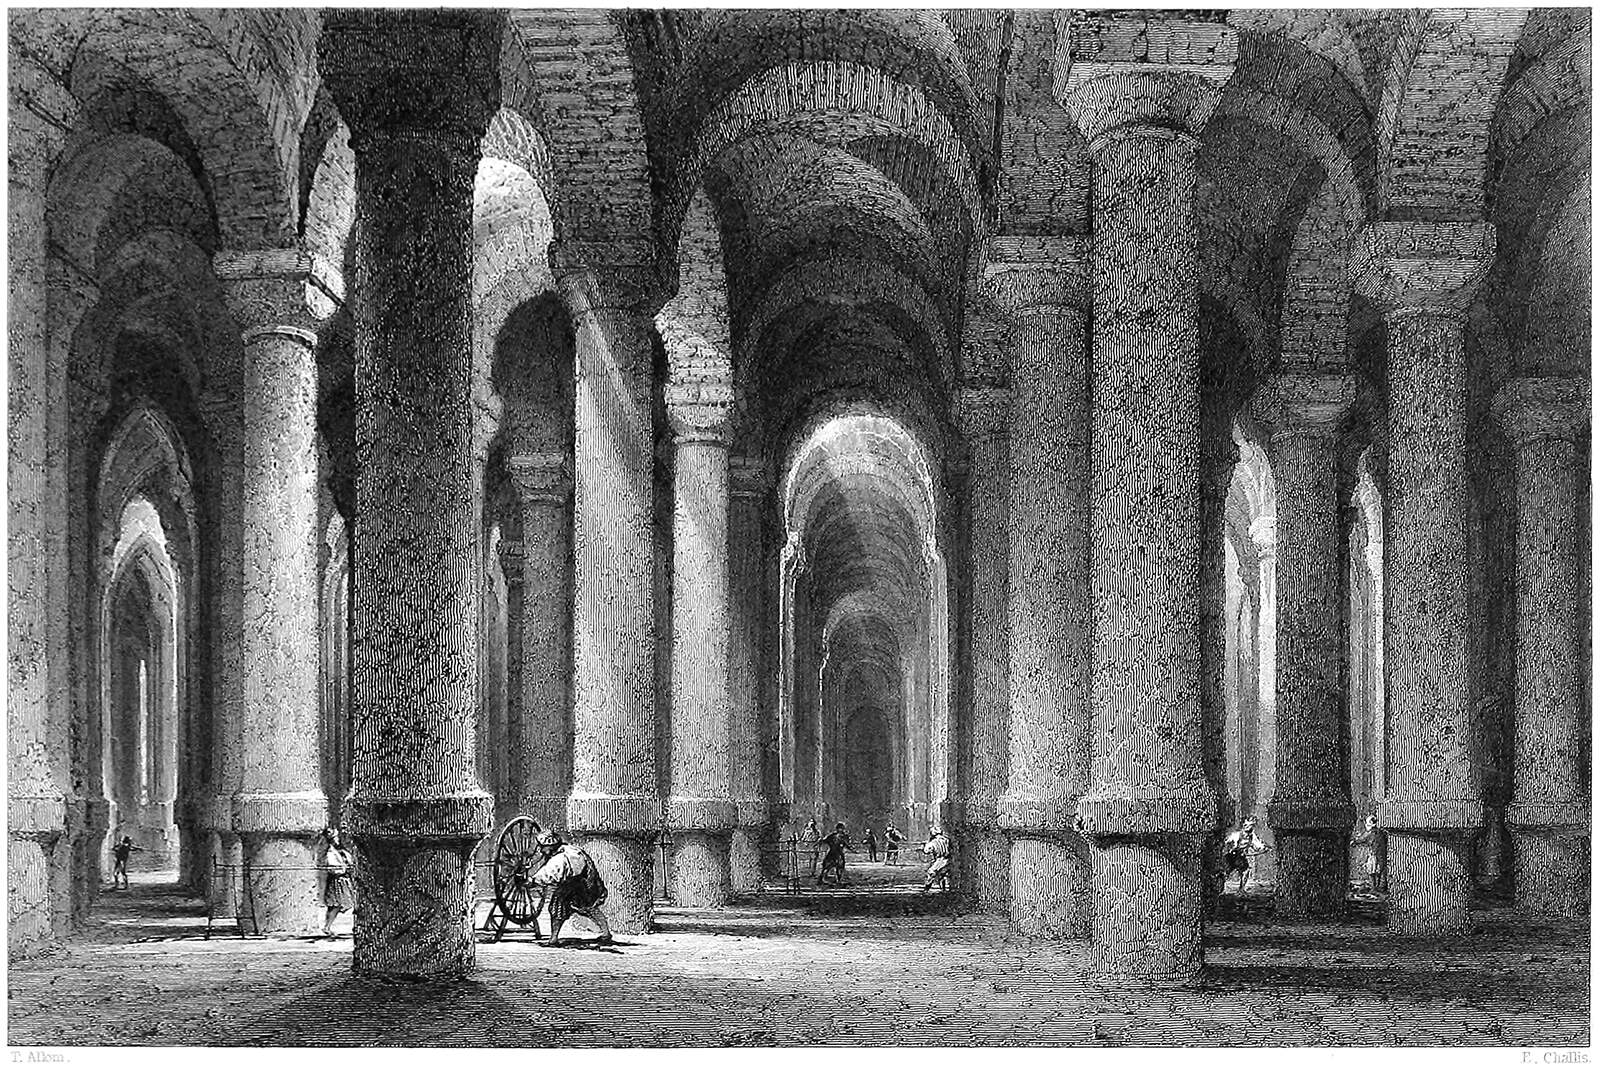 The Cistern of Philoxenos, a subterranean reservoir in Istanbul